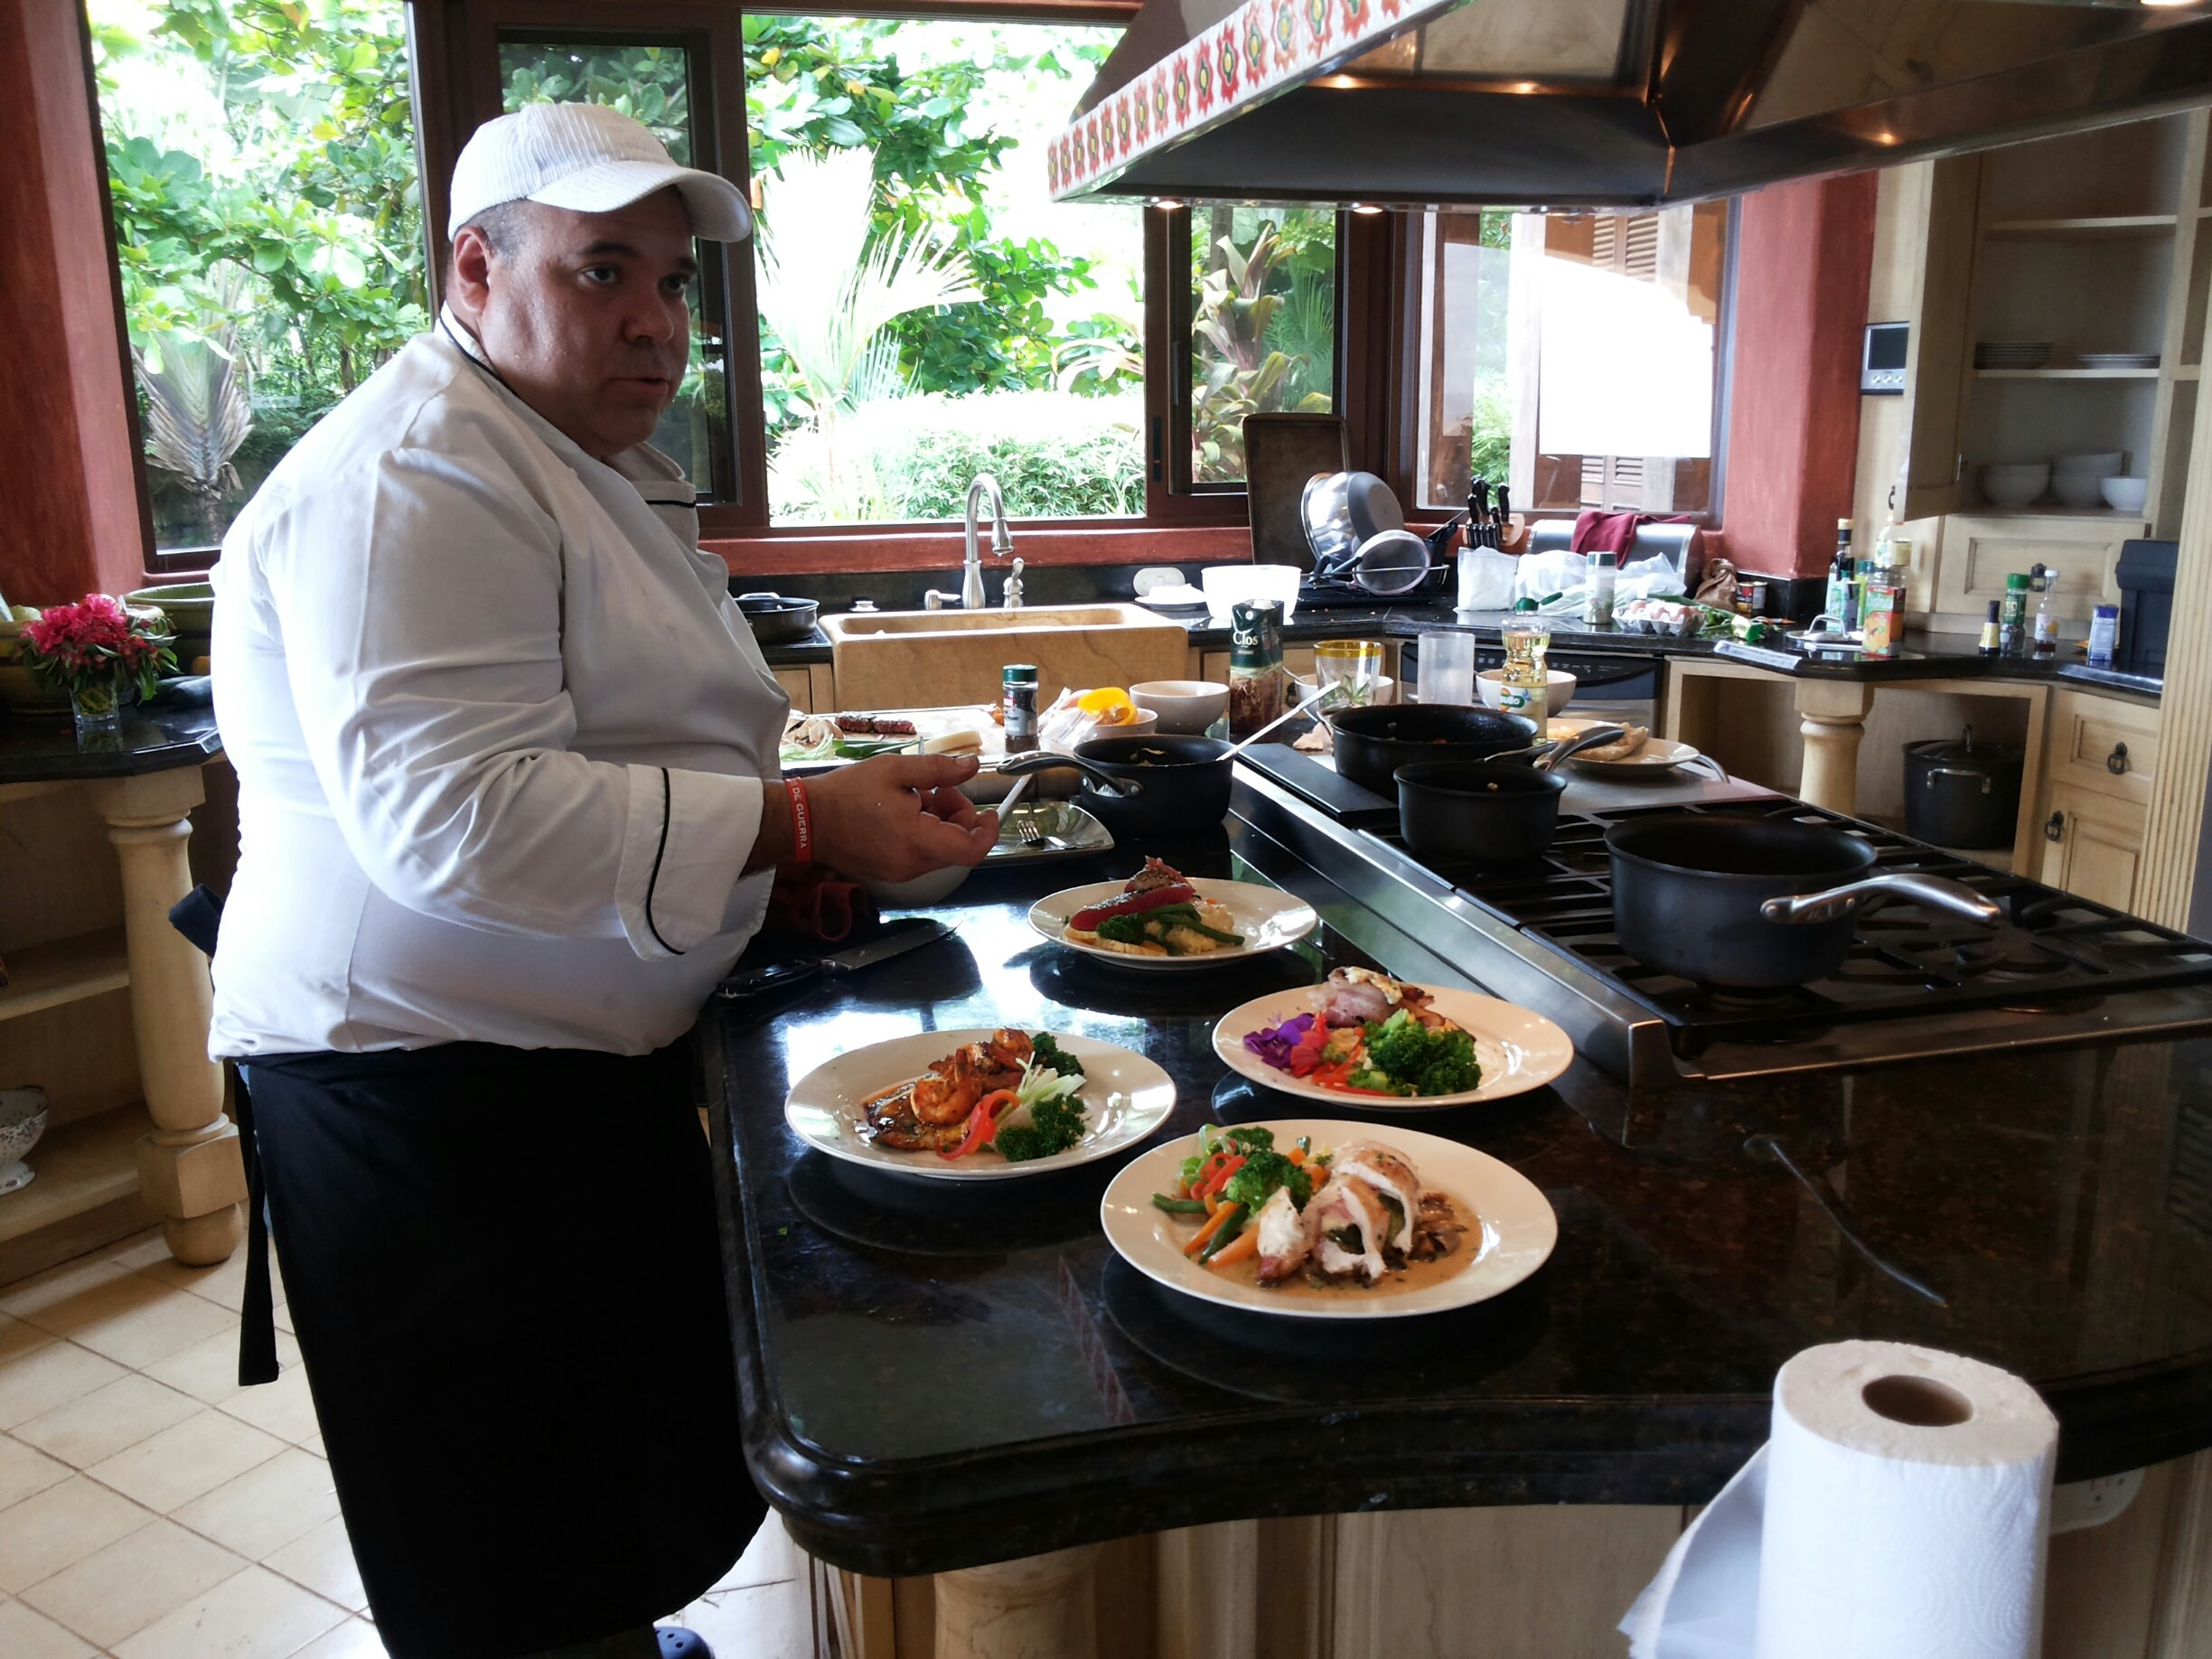 Private chef south pacific costa rica for Costa rica house rental with chef